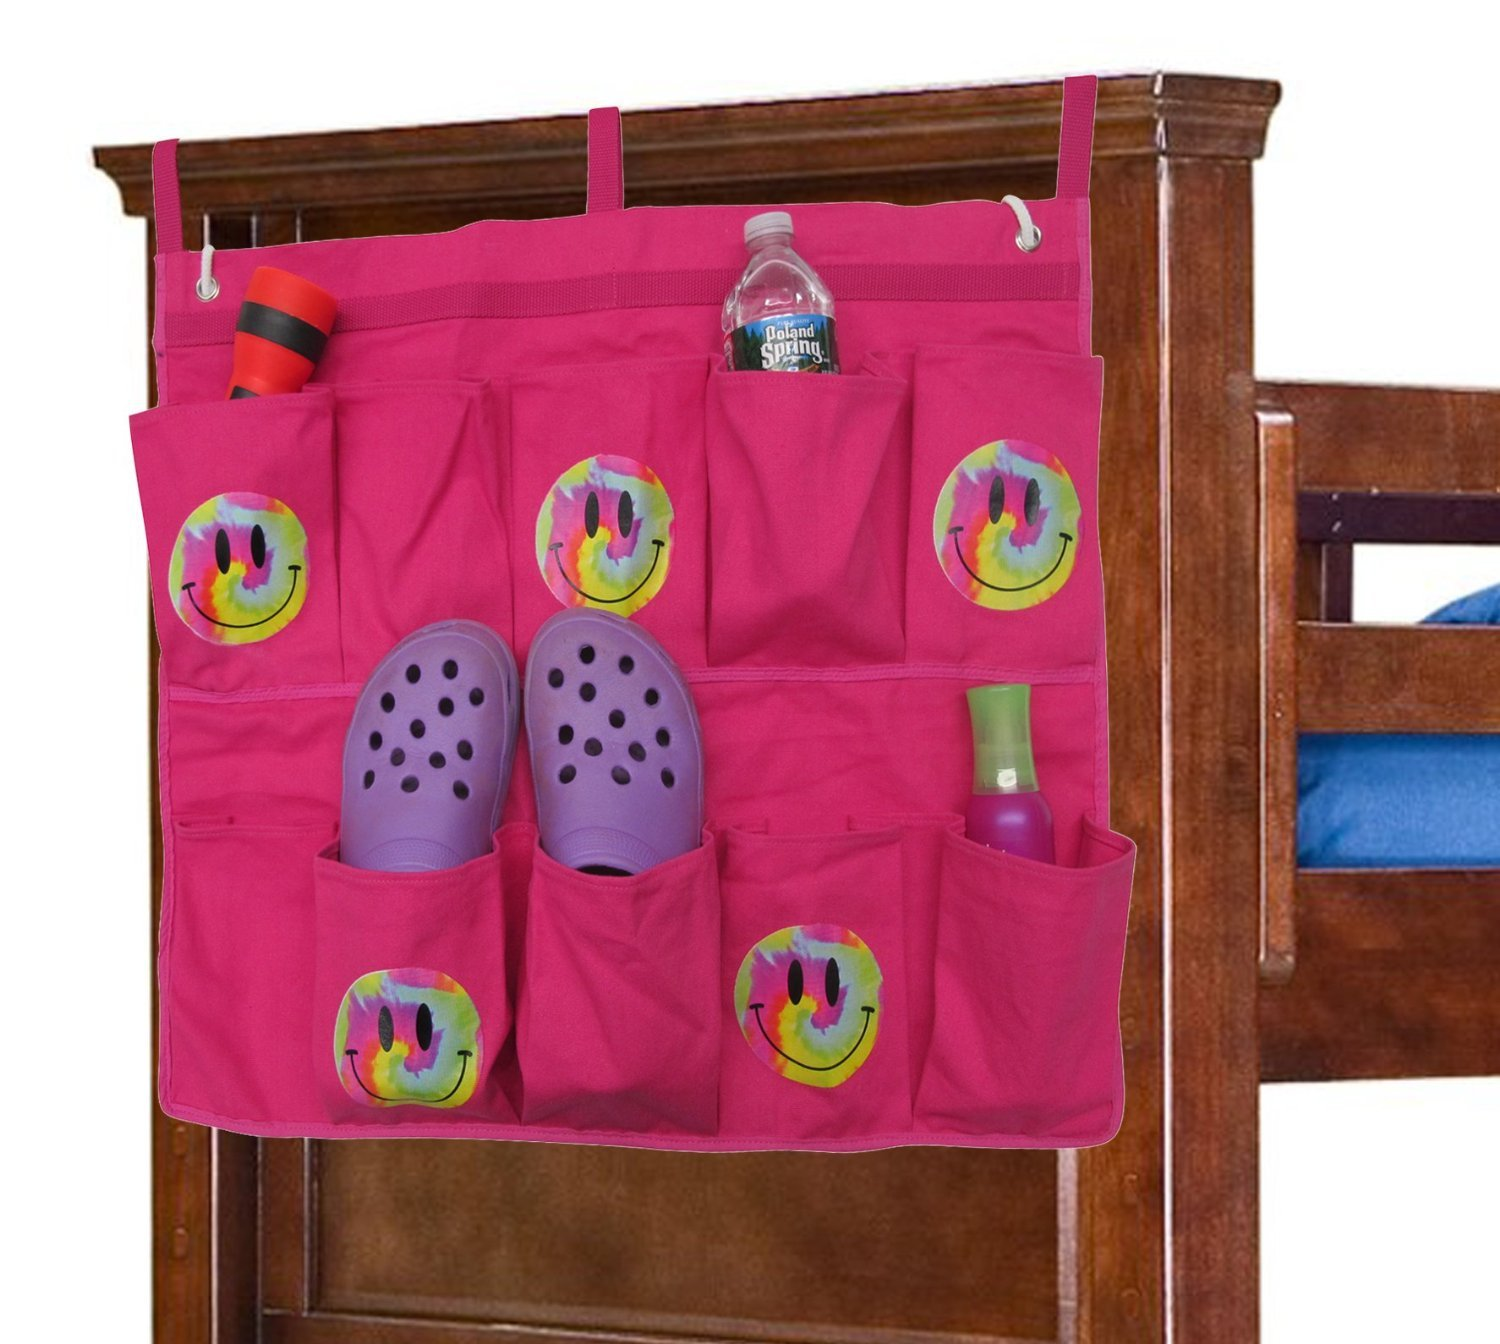 (Pink/Smiley) - End Of Bed Shoe Bag B00CXULUJ0 Pink/Smiley